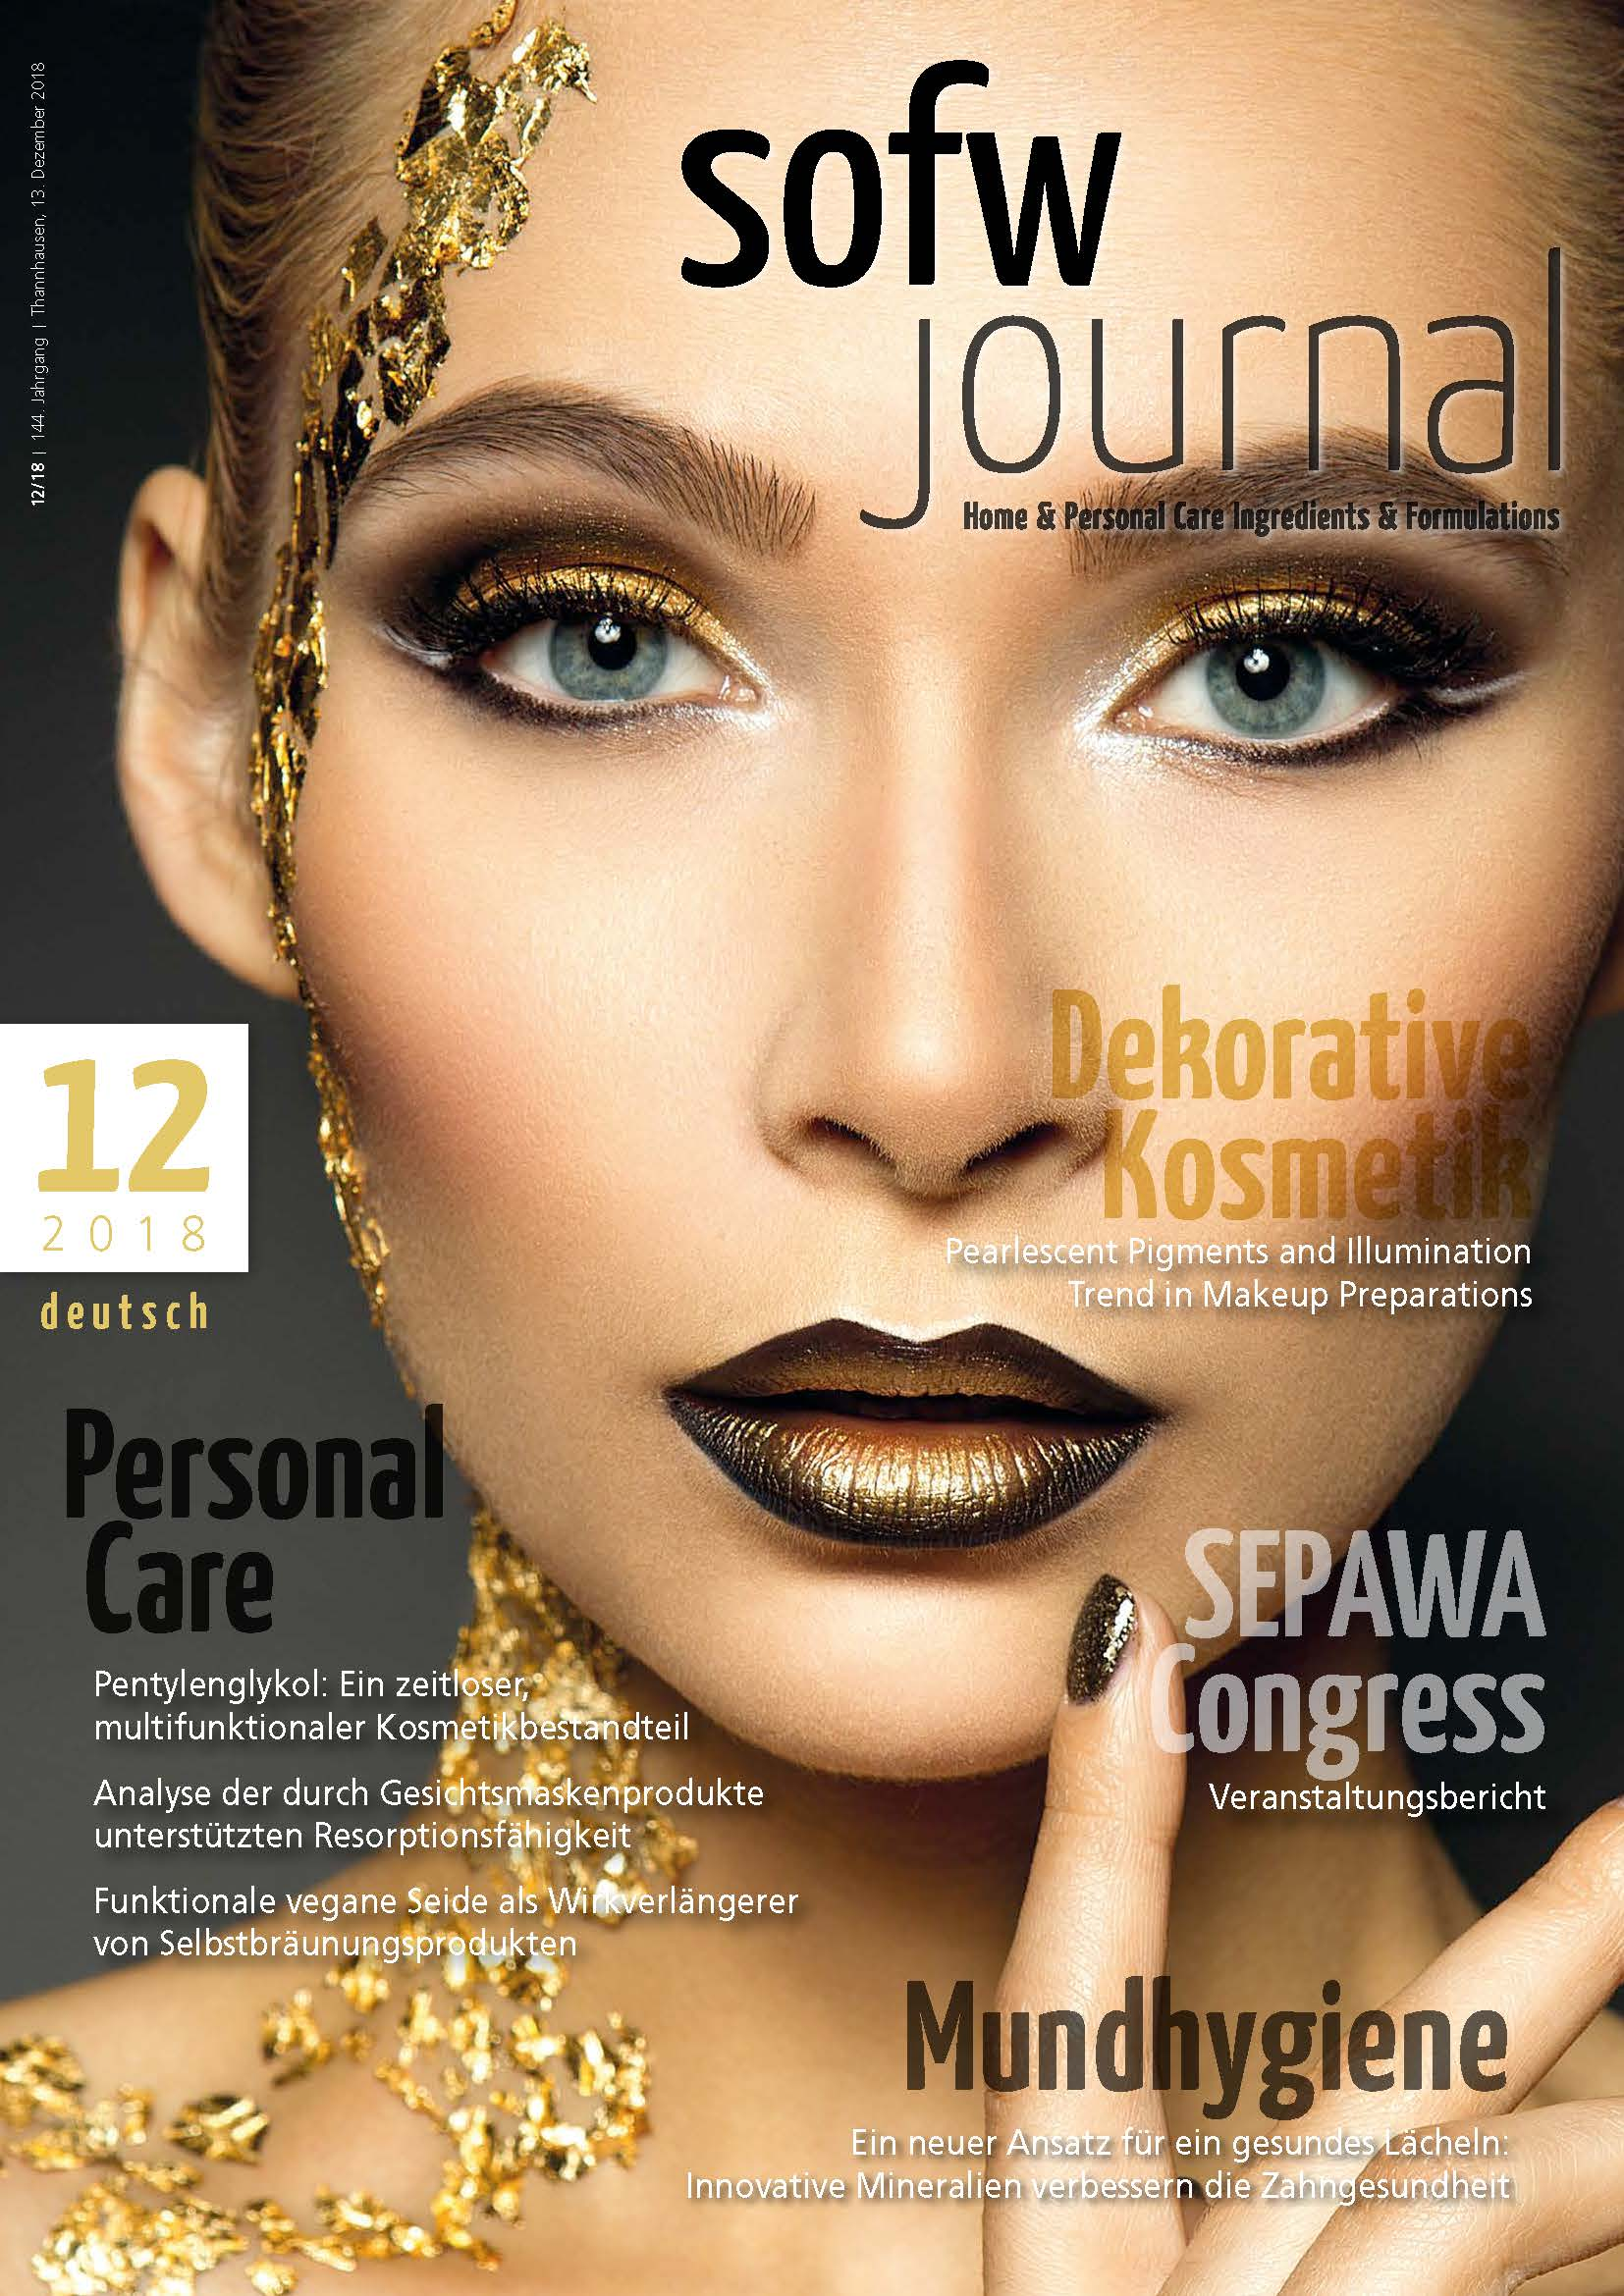 sofwjournal_de_2018_12_cover